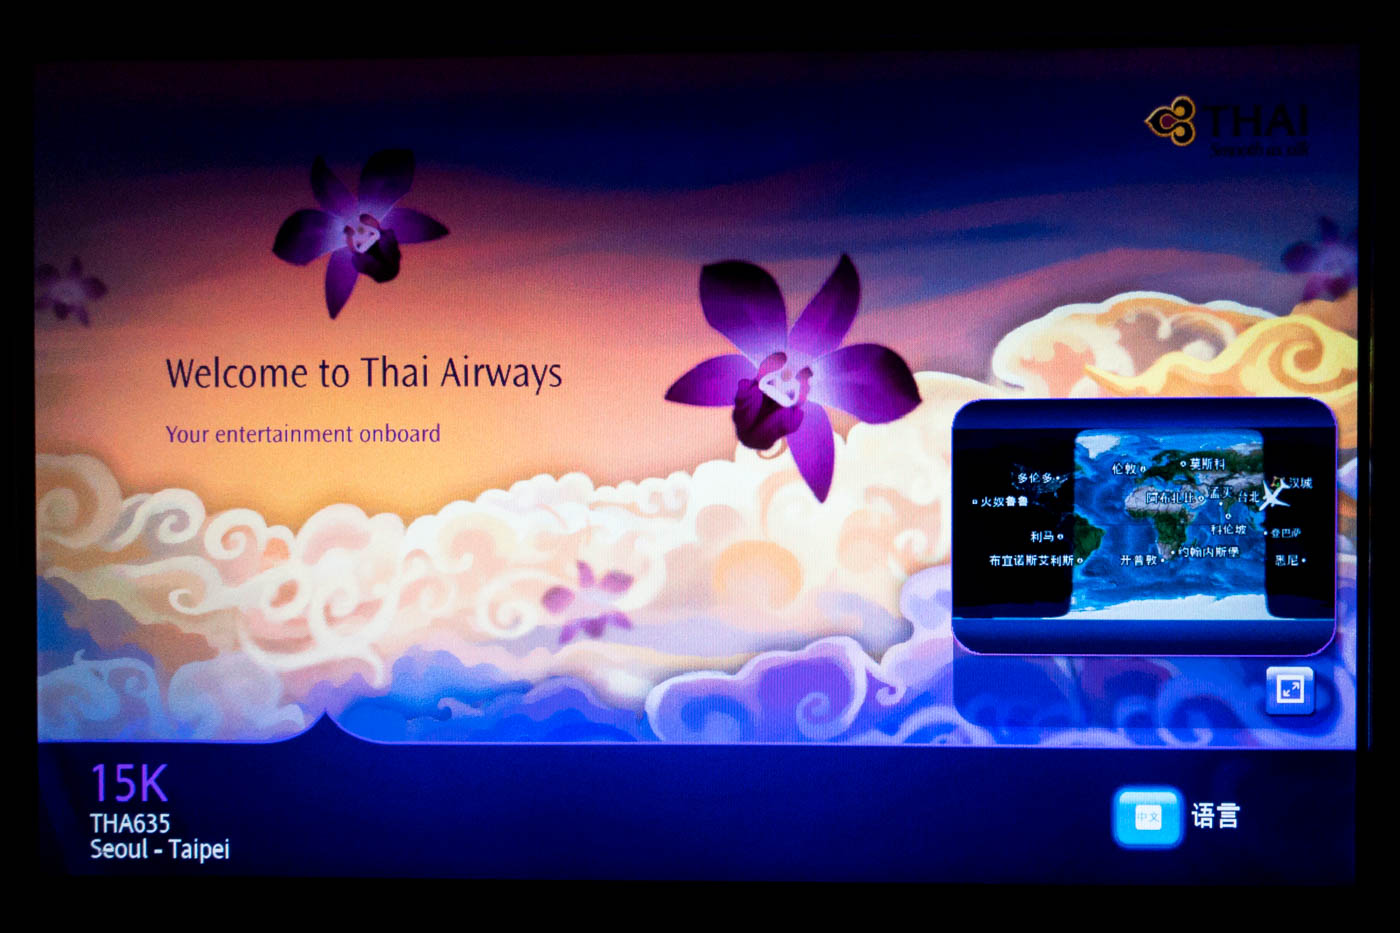 Thai Airways In-Flight Entertainment System Welcome Screen